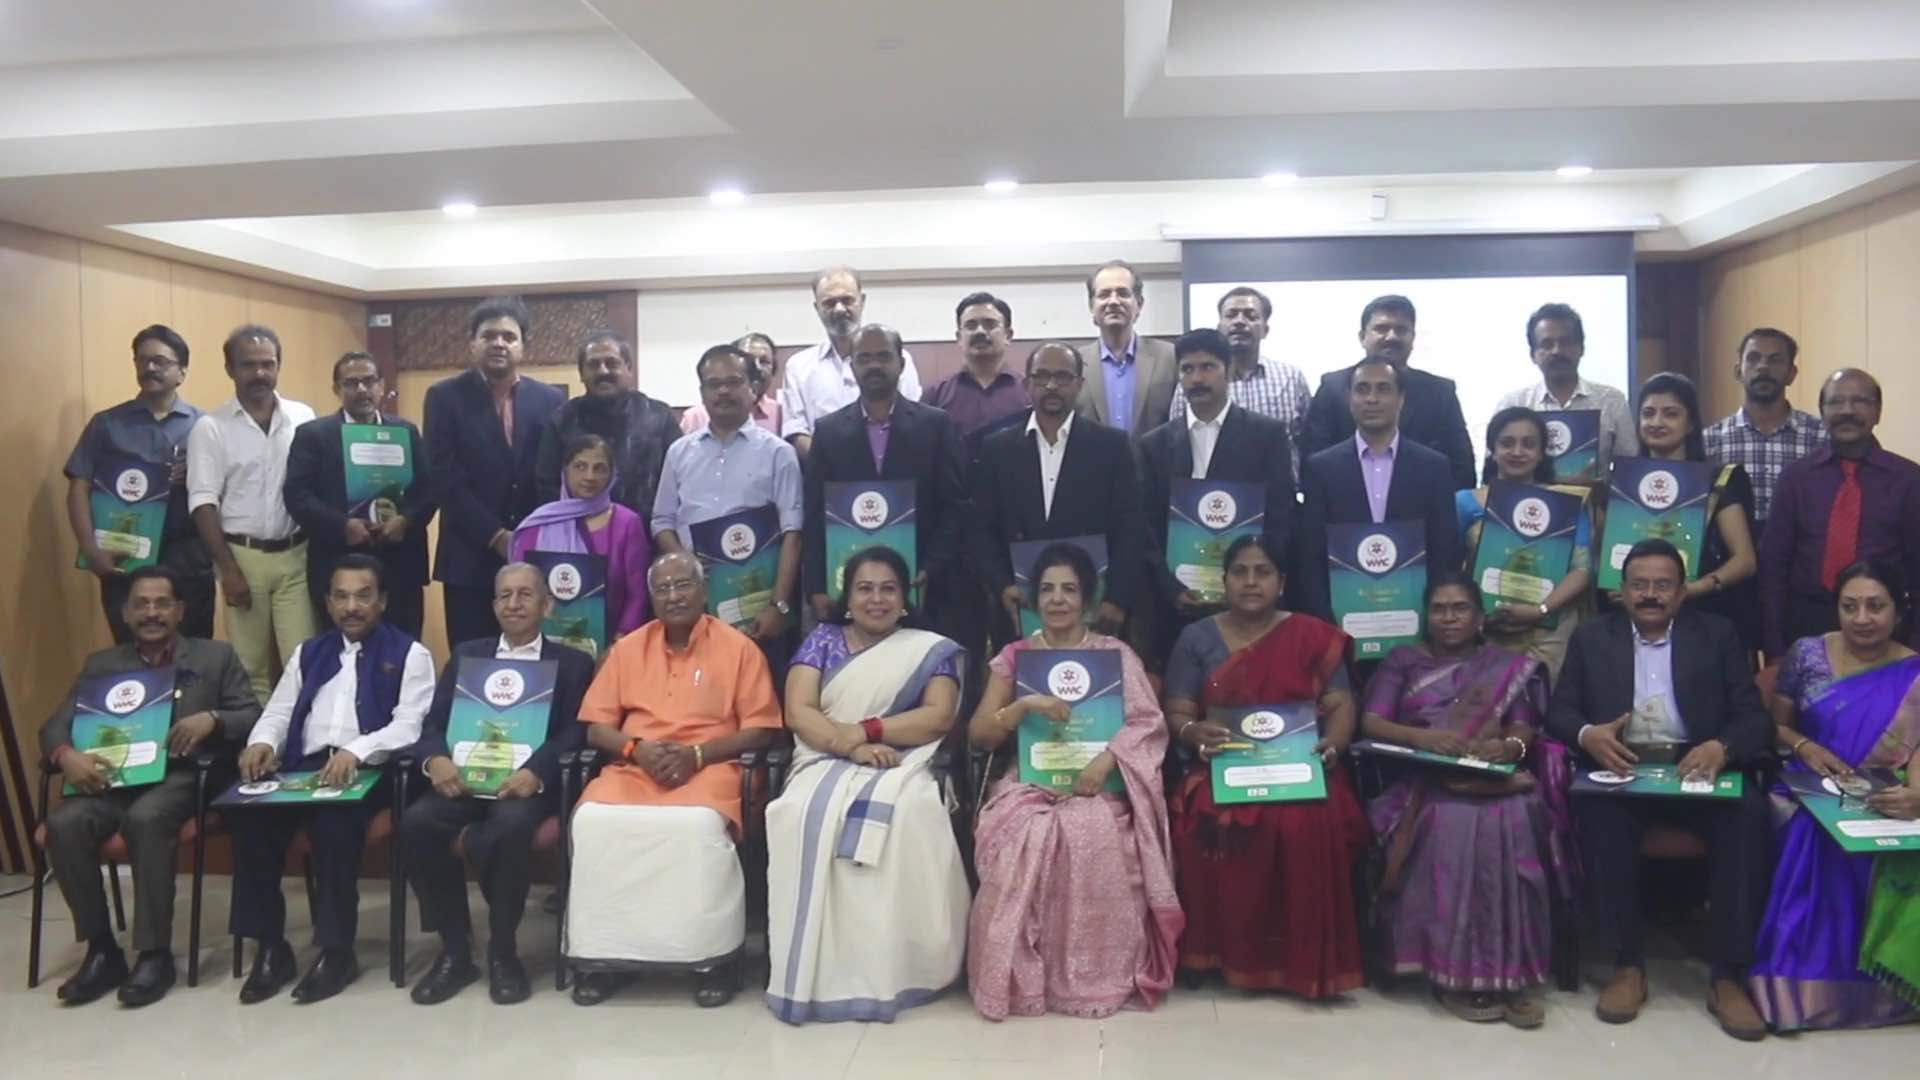 WMC Medical Excellence Awards (Kerala Chapter) Short Video